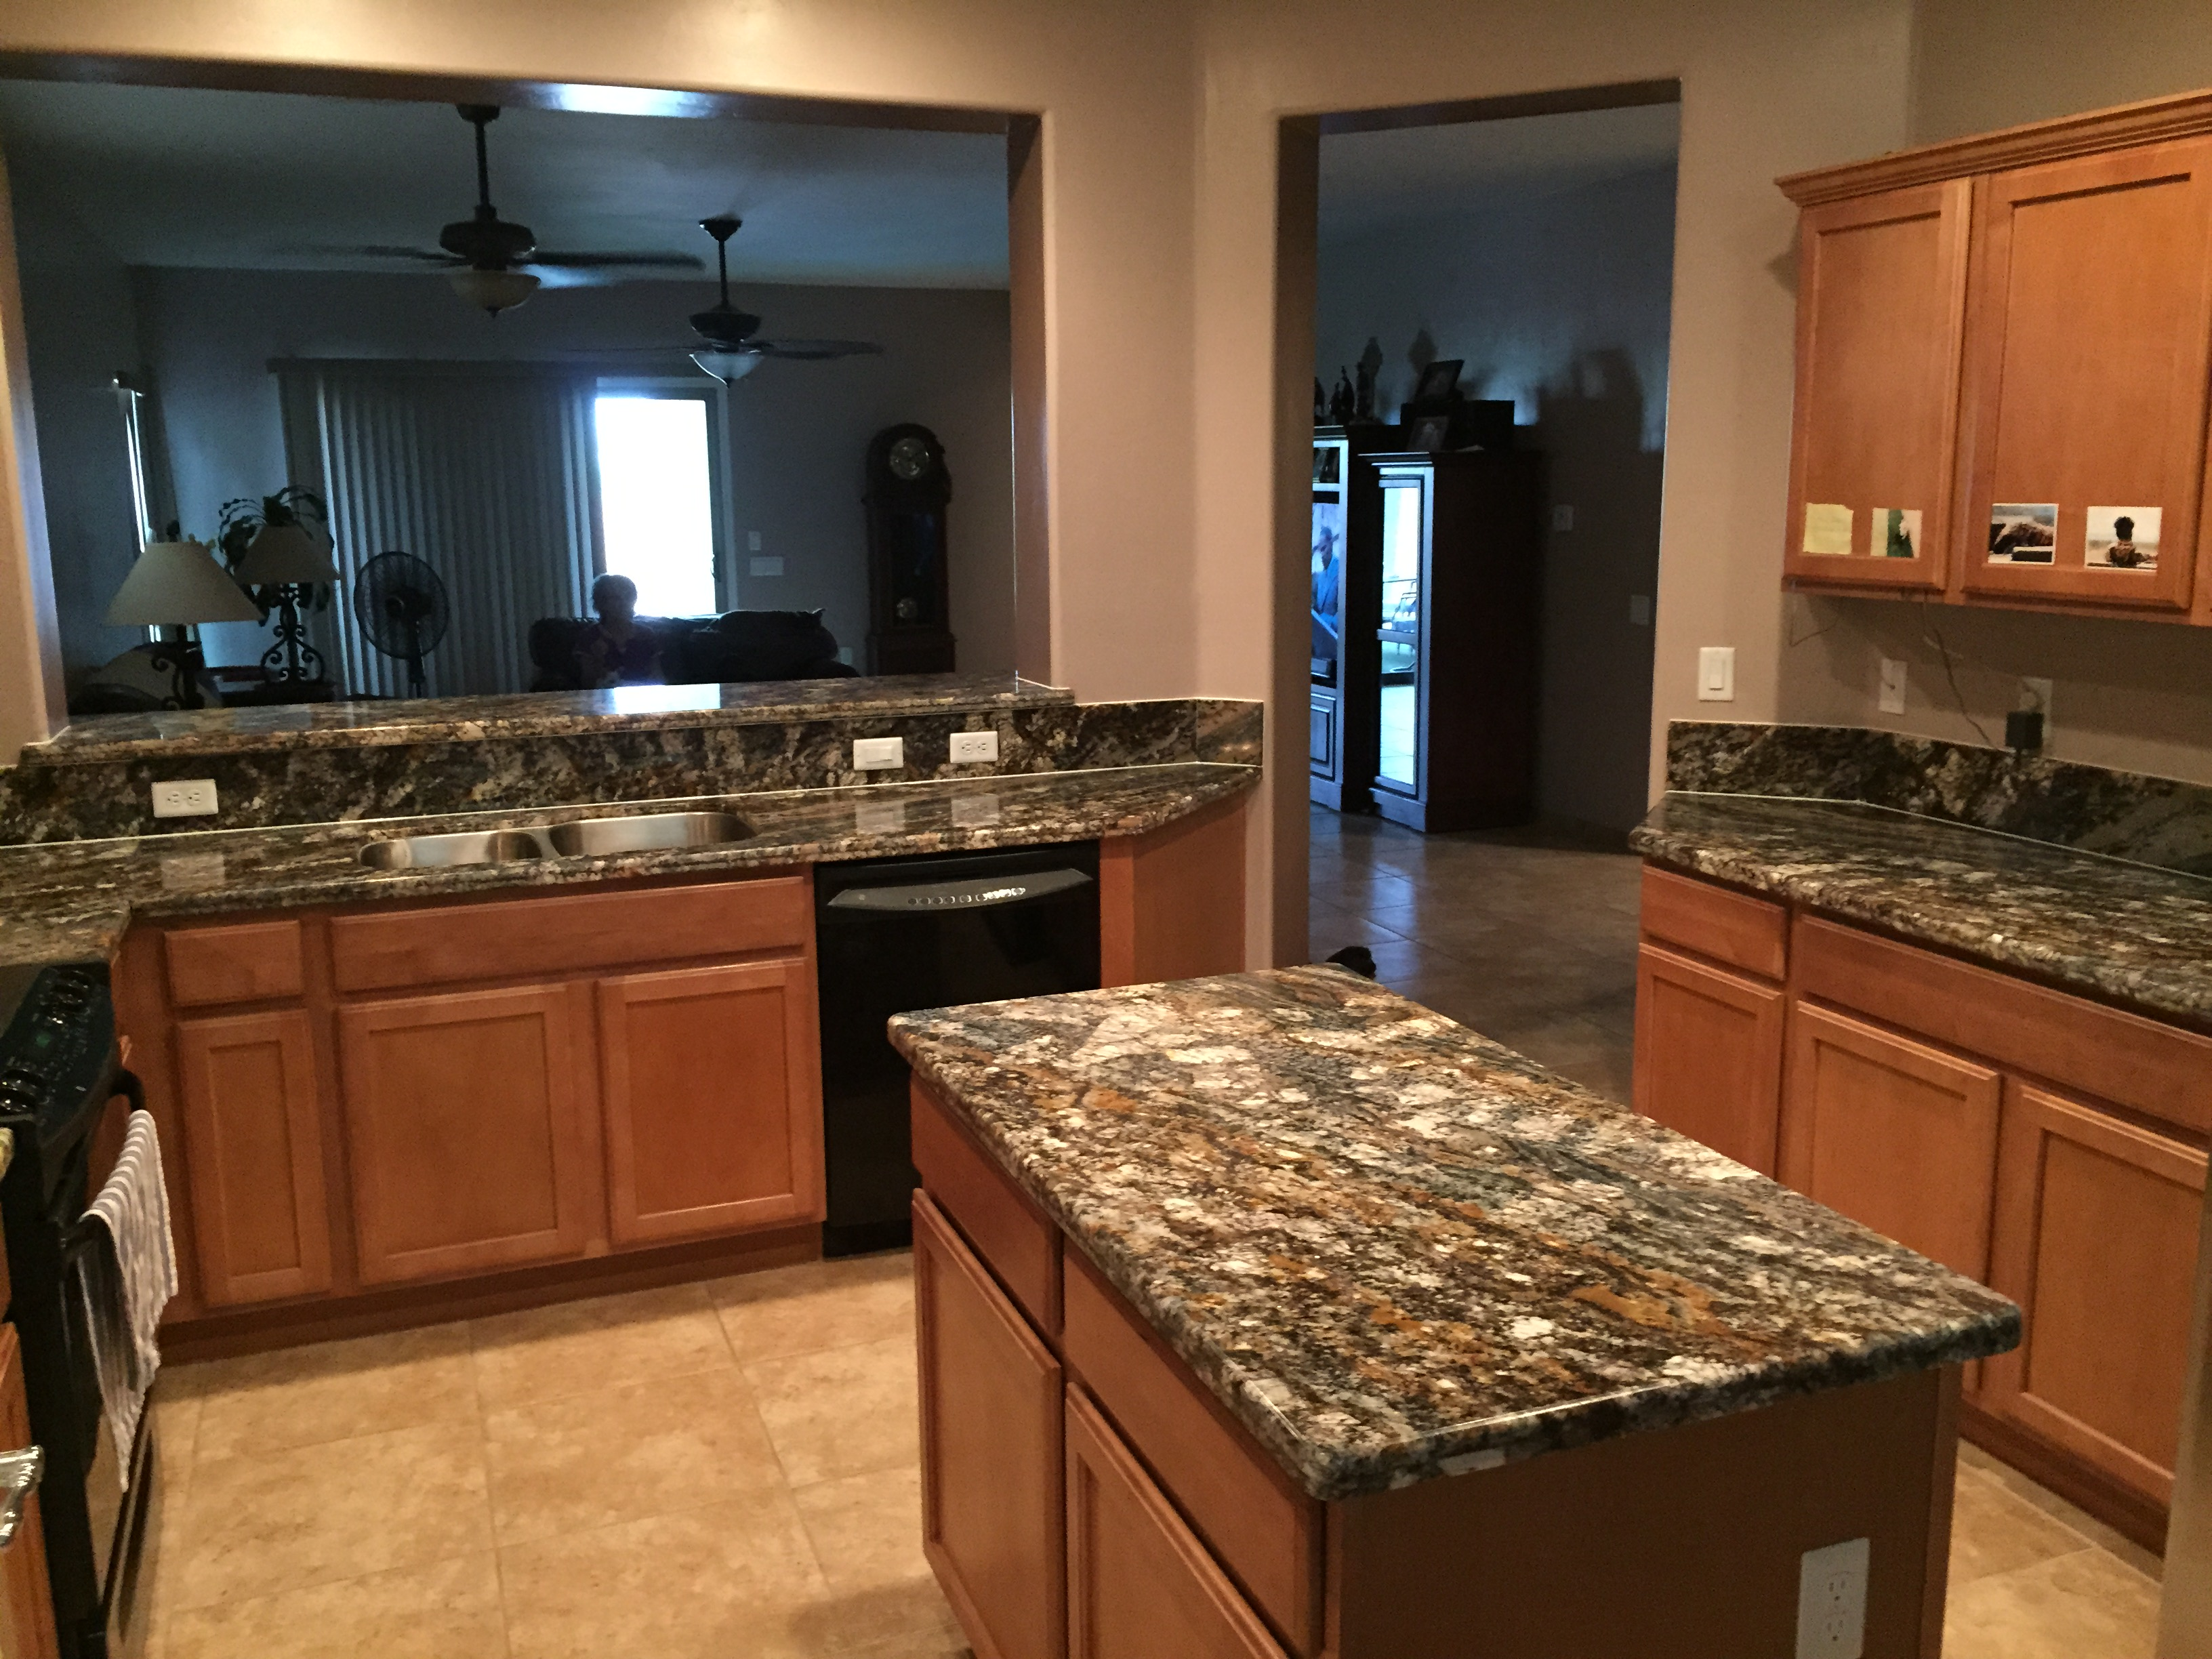 Kitchens Gmt Stoneworks